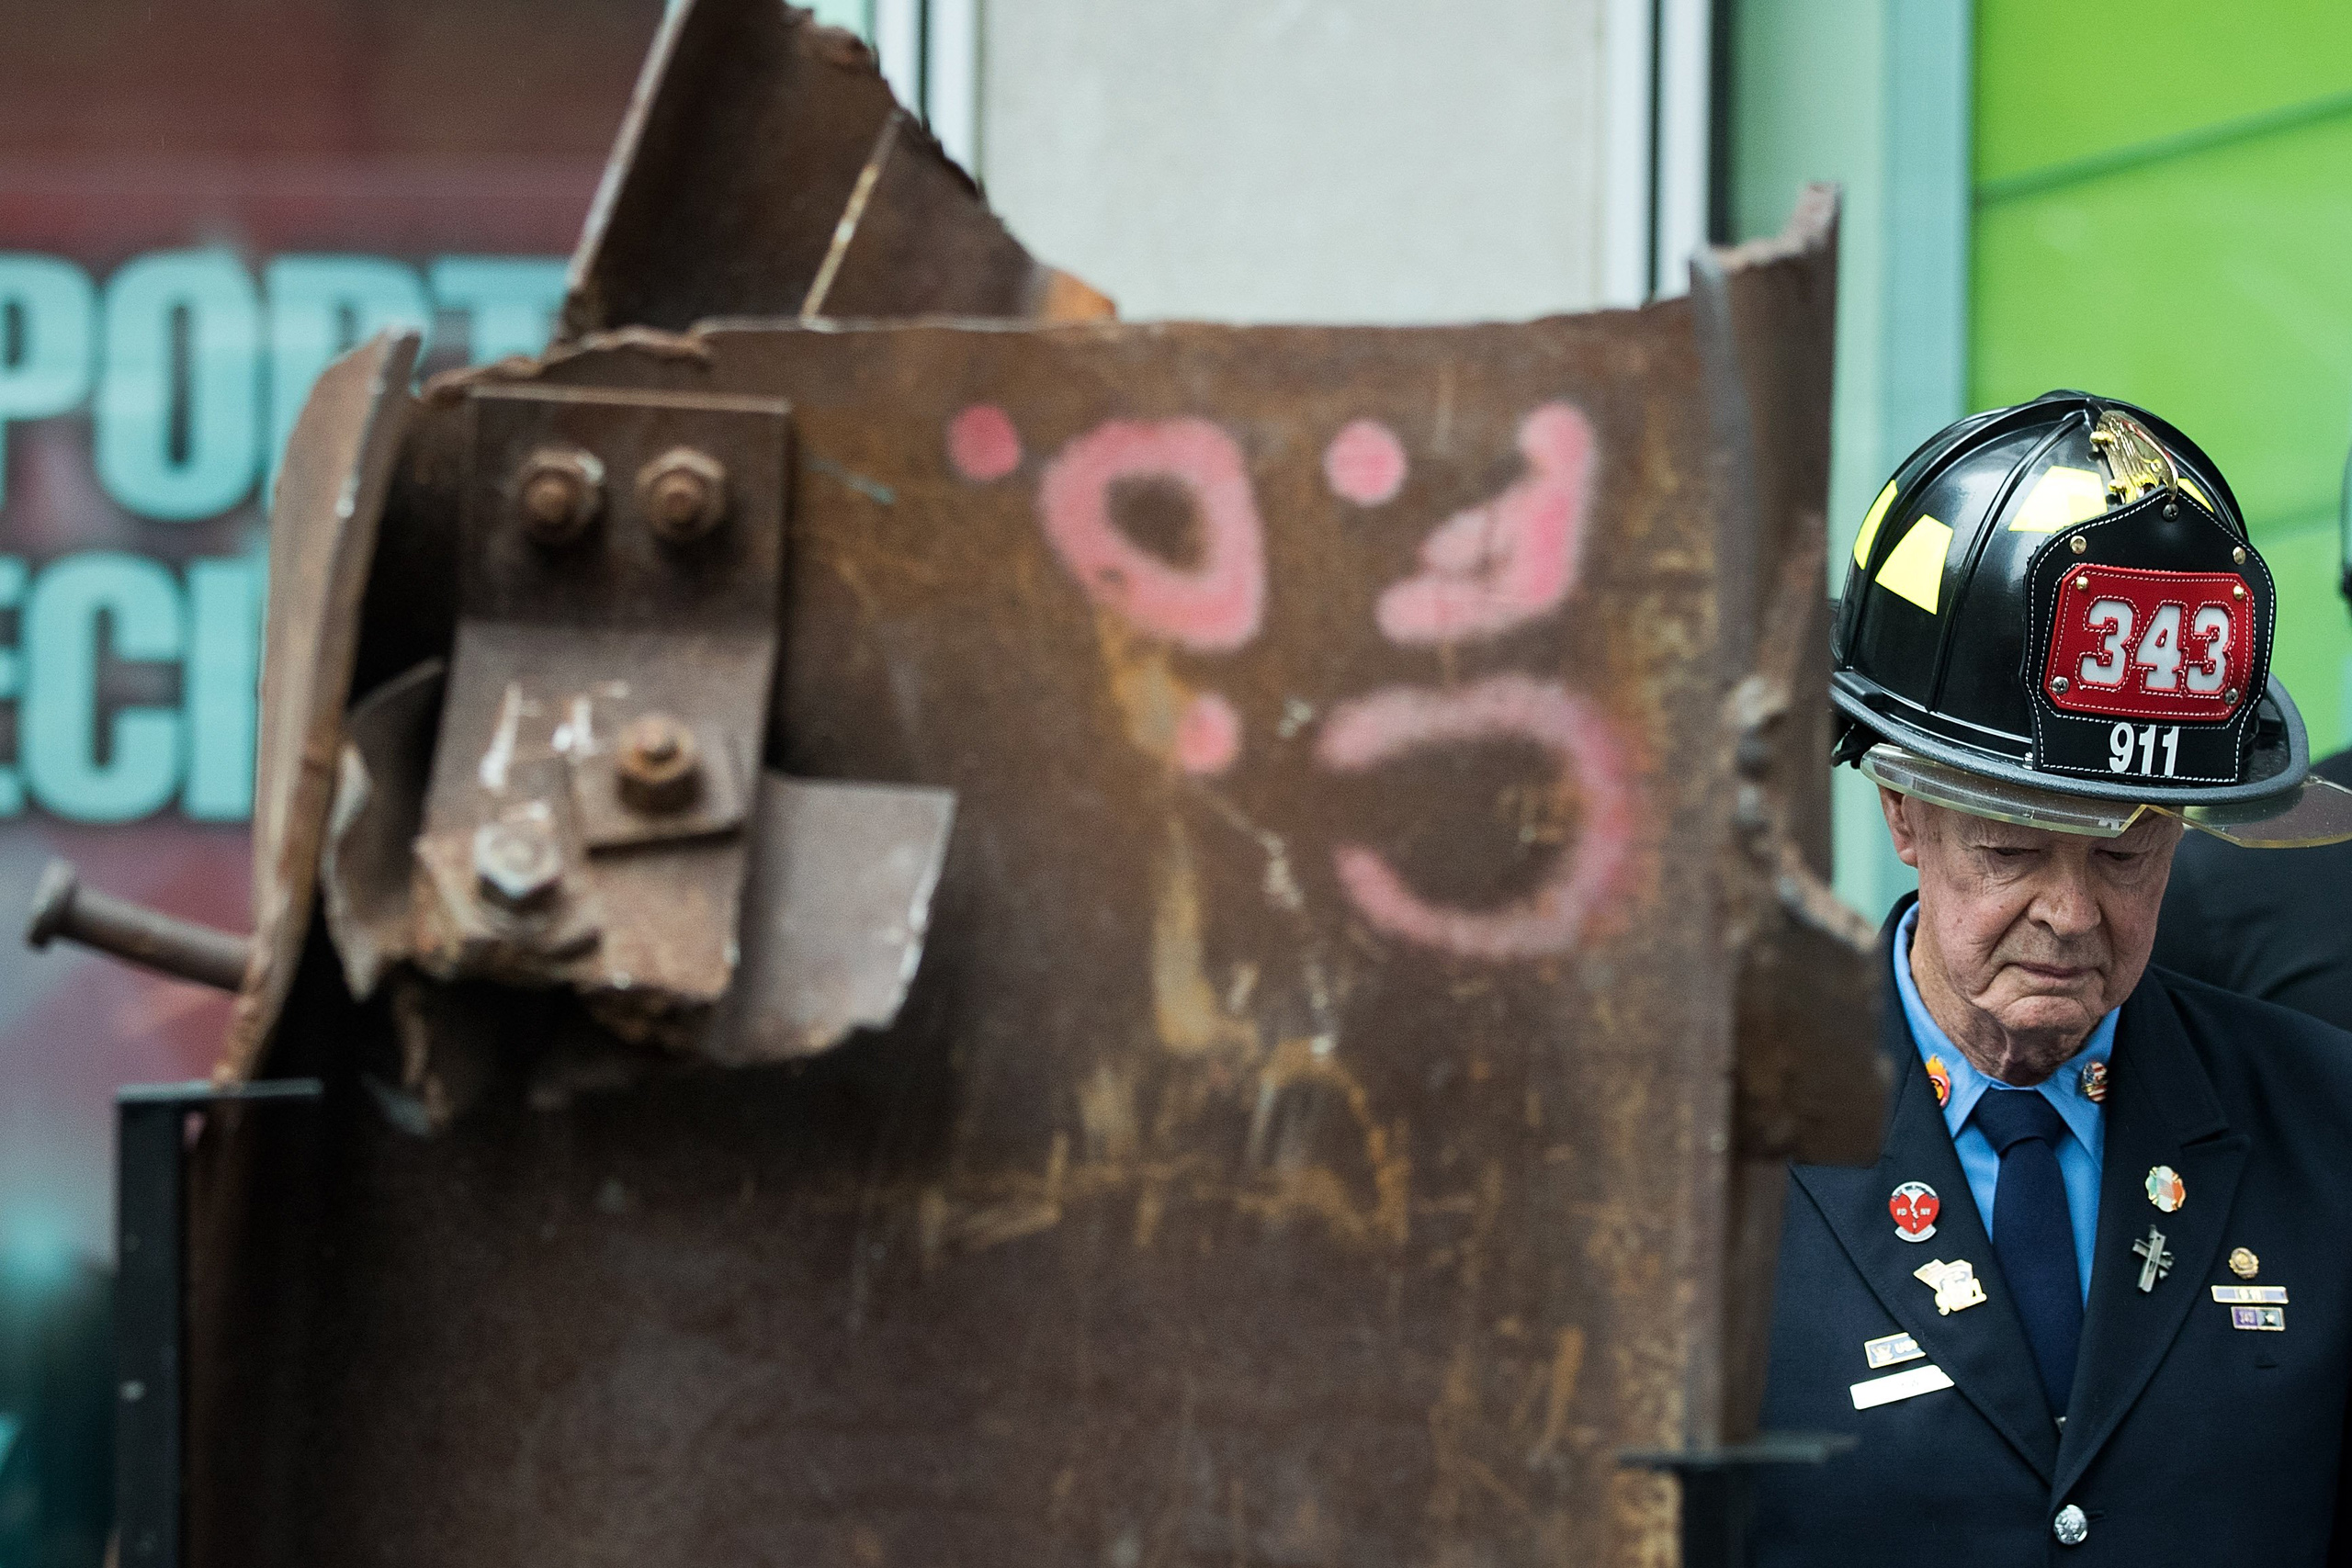 Bob Beckwith, retired firefighter who stood next to President George W. Bush at ground zero, stands next to a piece of steel from the World Trade Center, during a ceremony outside the Fox News studios to mark the beginning of the piece of steel's journey from New York City to Gander, Newfoundland in Canada, in New York City on Sept. 6, 2016.